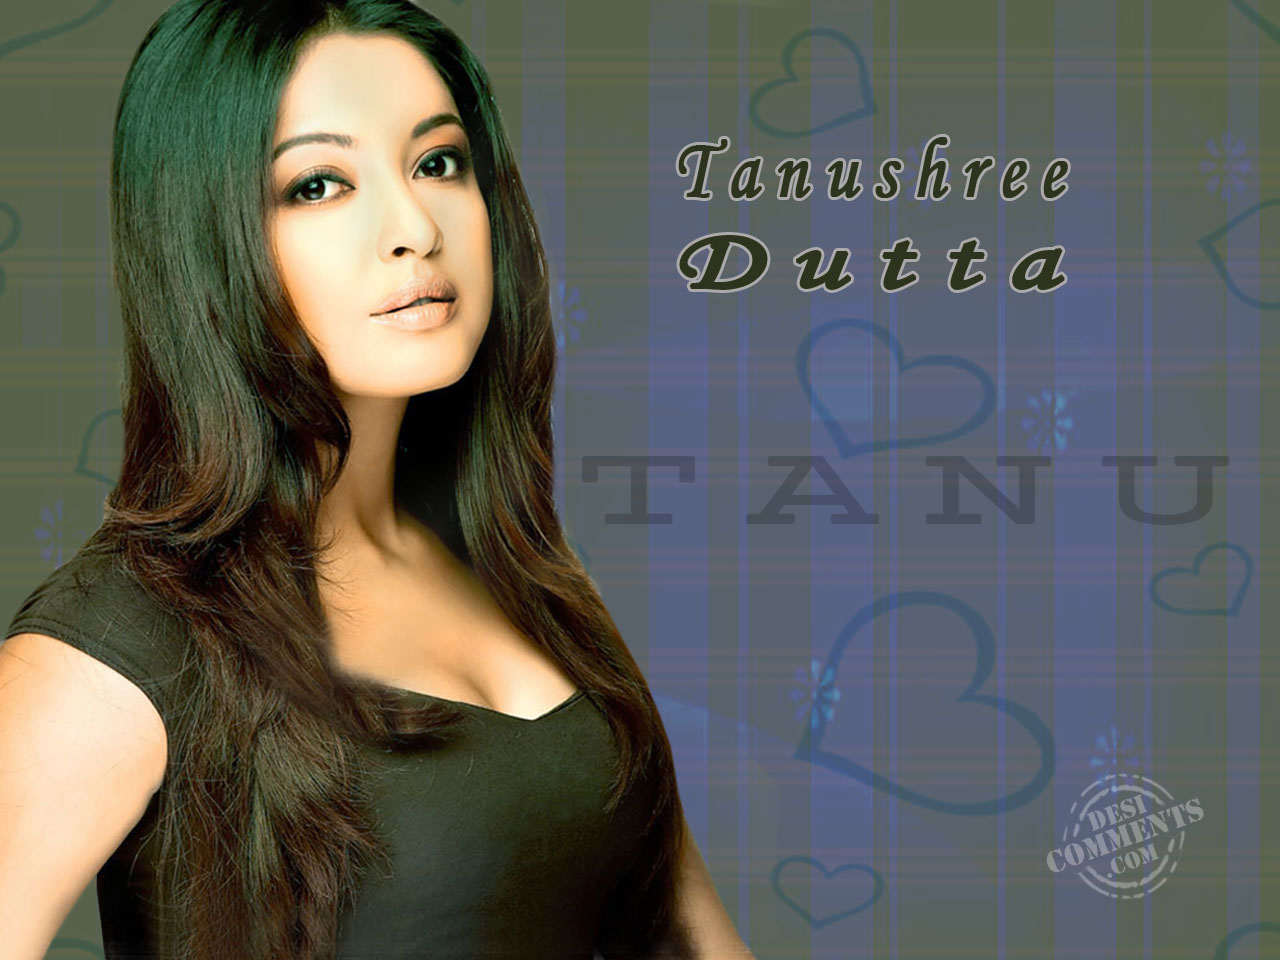 Sad Wallpaper With Quotes In Hindi Femina Miss India 2004 Wallpapers Desicomments Com